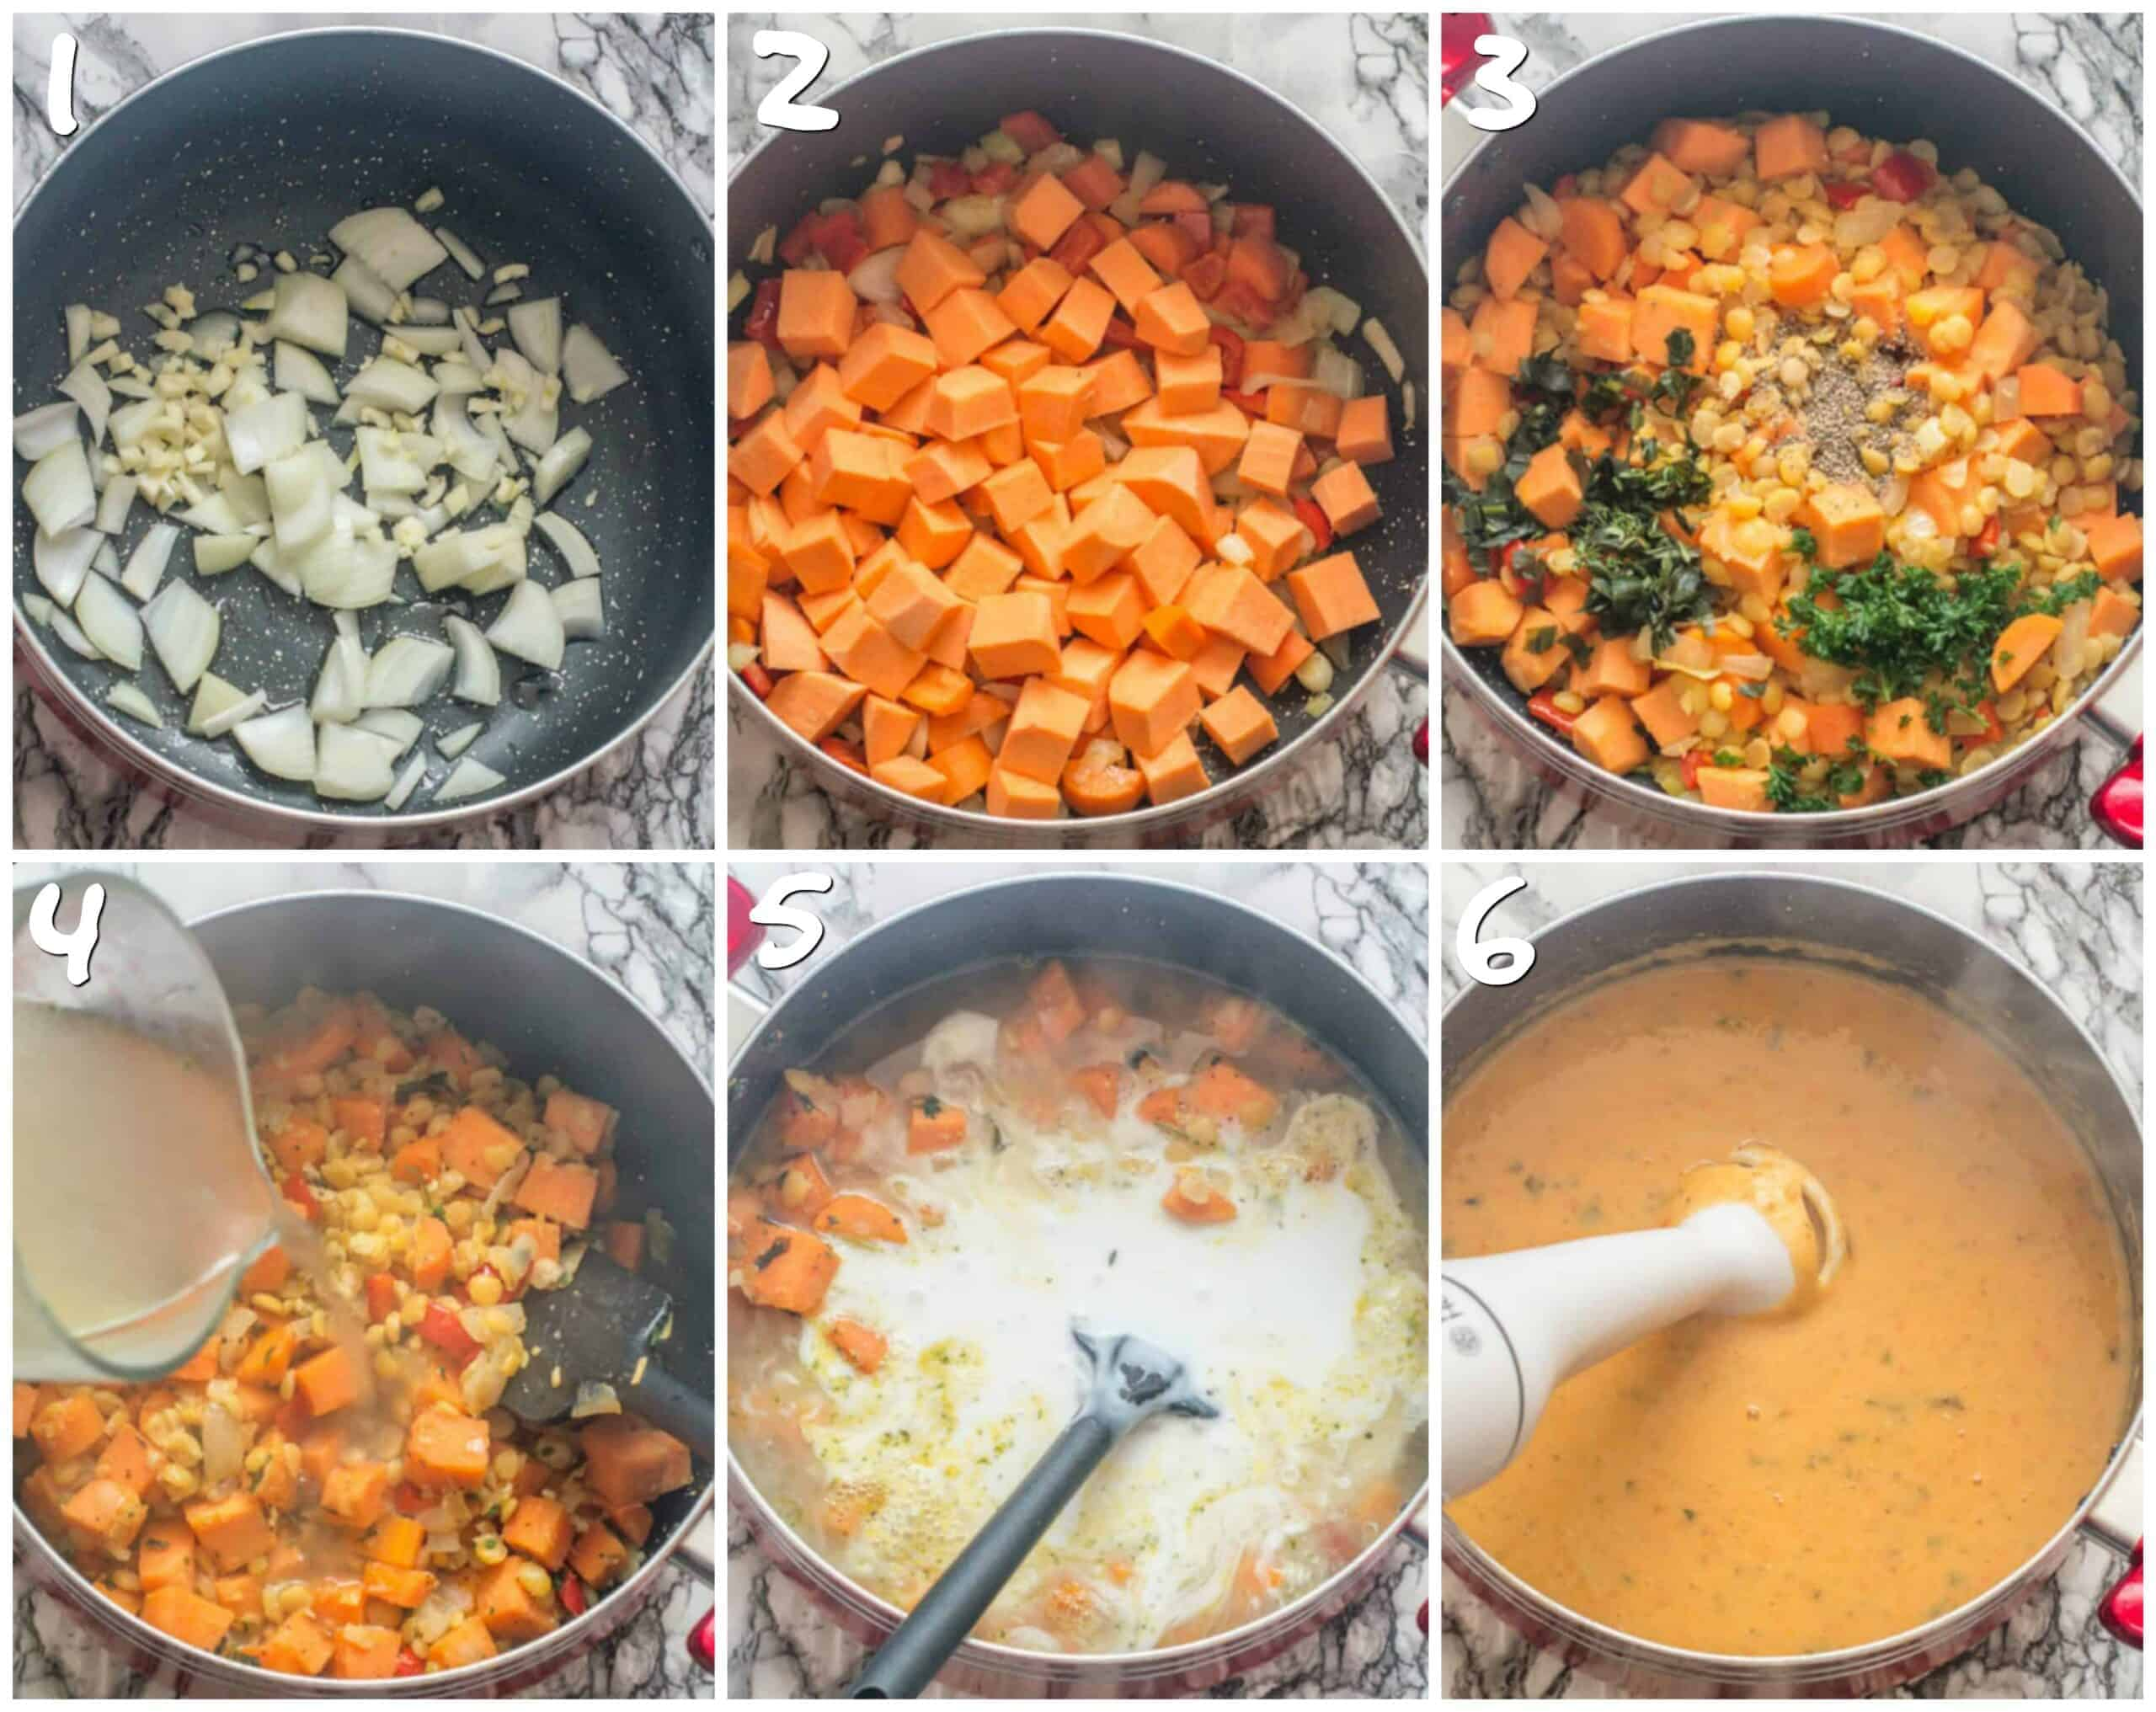 steps 1-6 sauteing the vegetables and pureeing the split peas